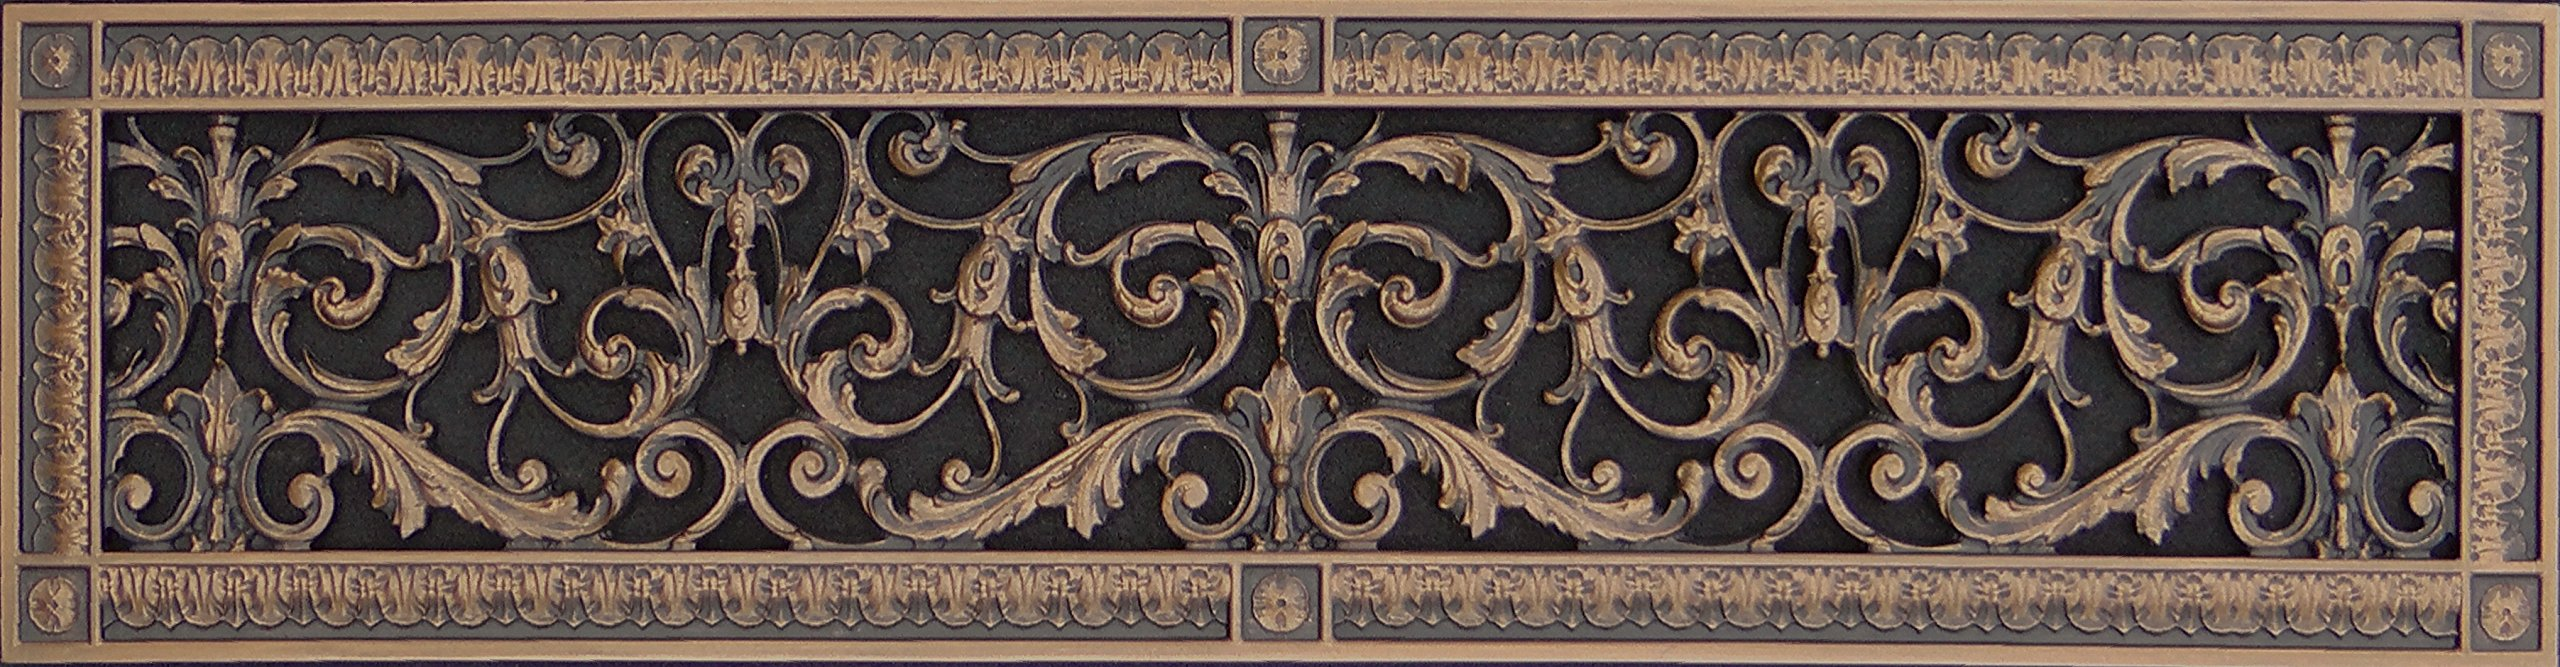 """Decorative Vent Cover, Grille, Return Register, made of Urethane Resin, in French style fits over a 6""""x 30"""" duct opening. Total size, 8"""" x 32"""", for walls & ceilings only(not floors) (Rubbed Bronze)"""